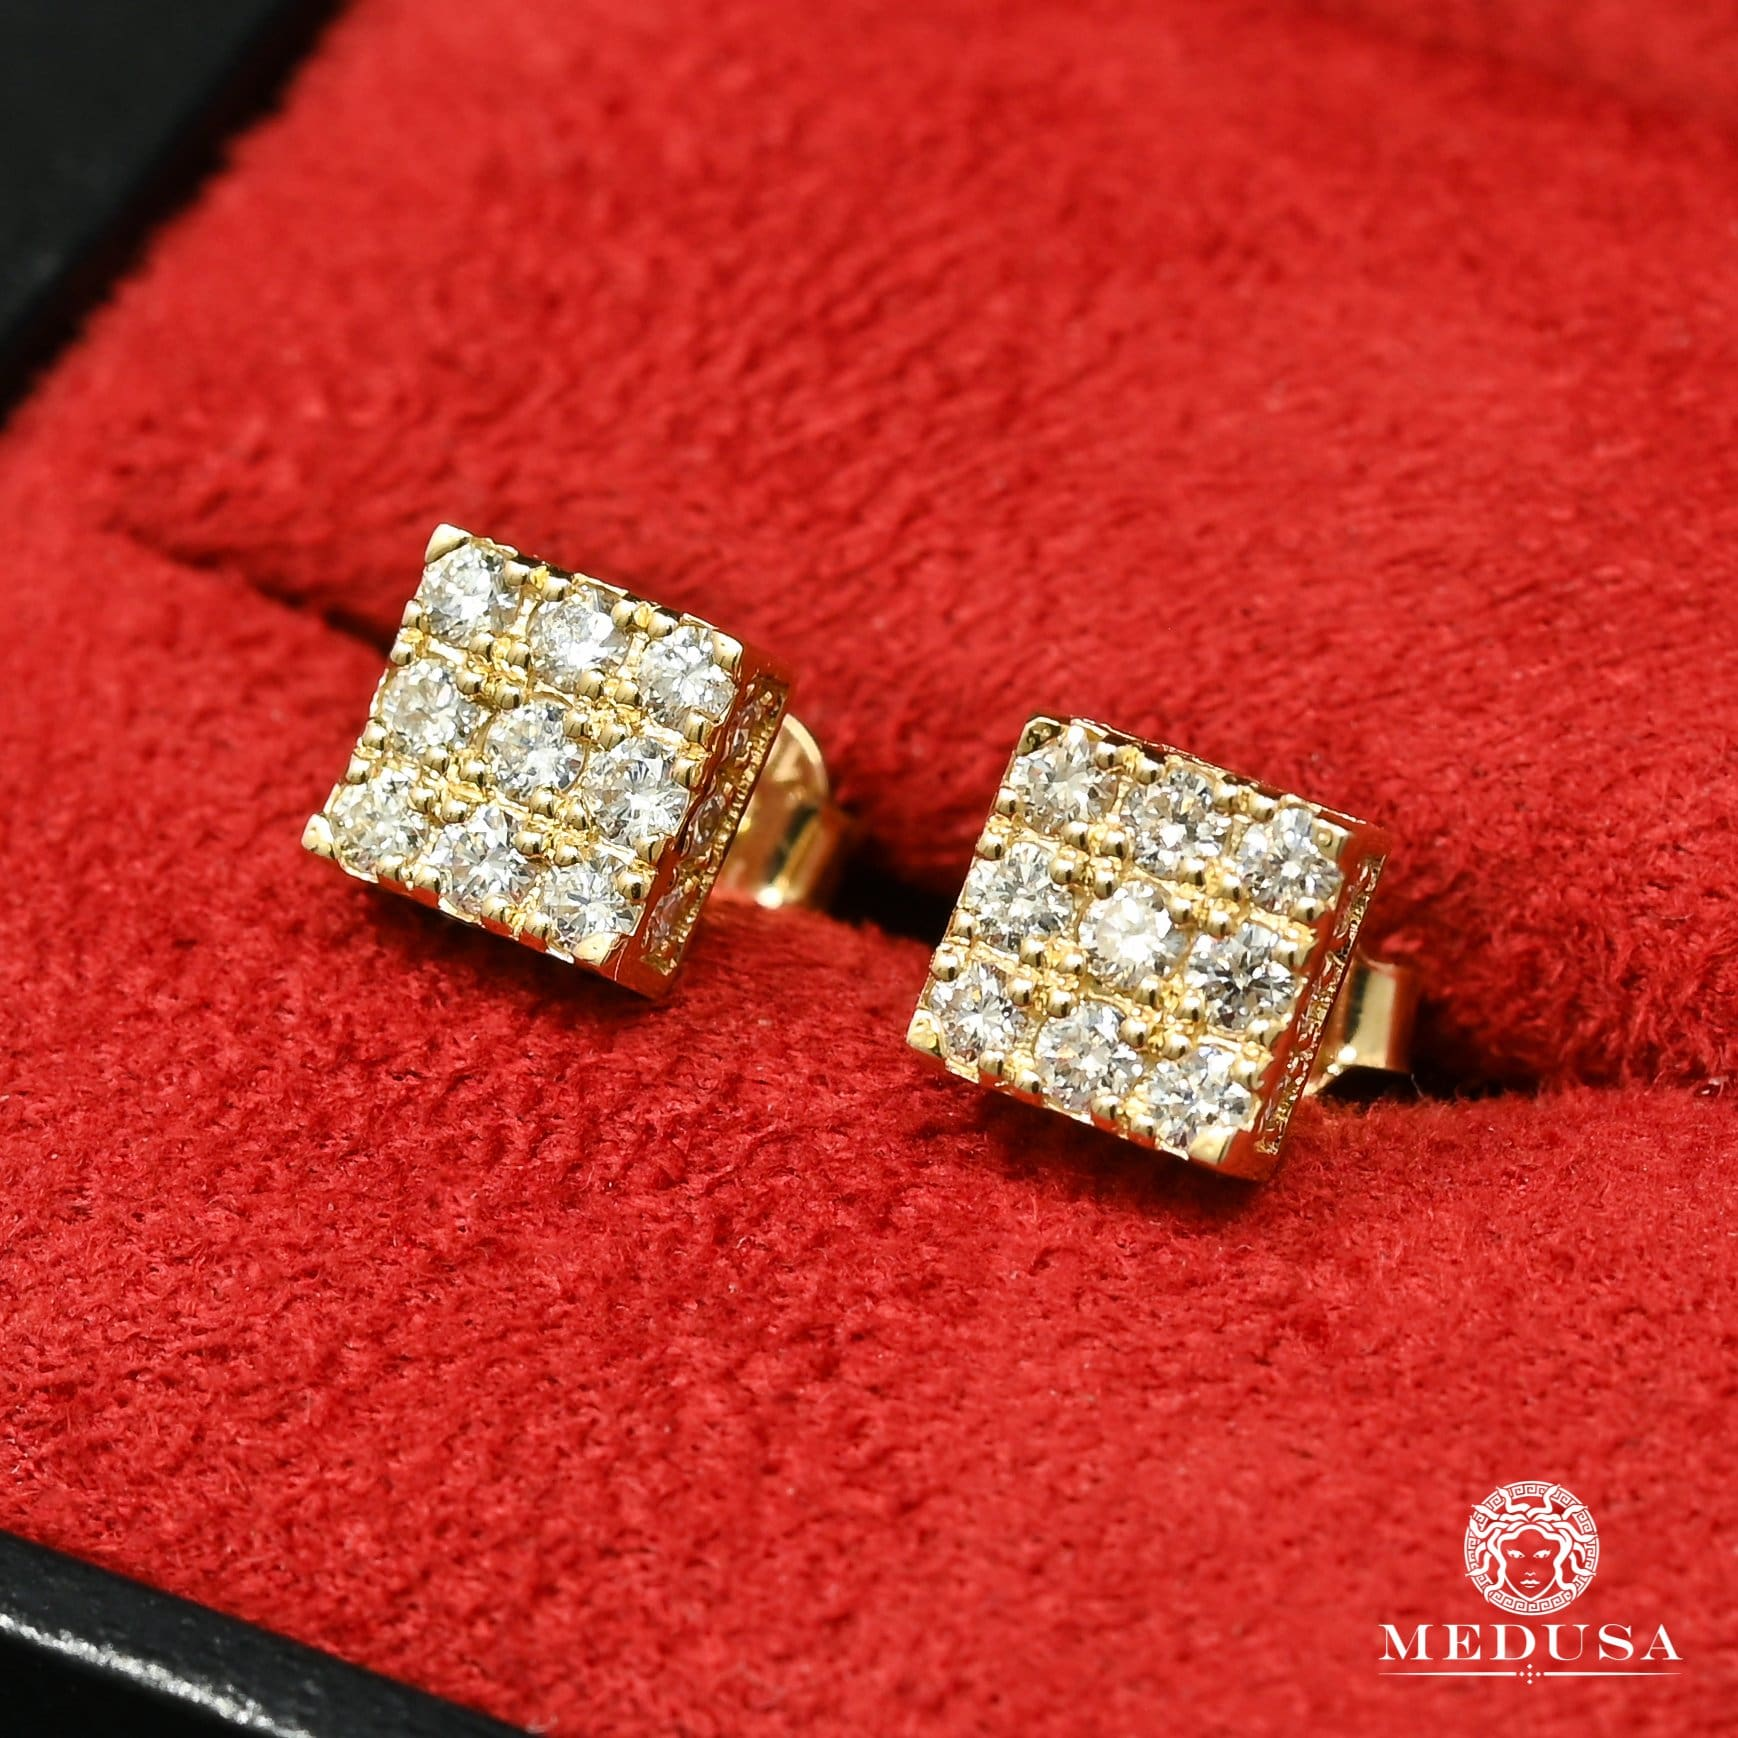 10K Gold Diamond Studs | Studs Earrings D13 - MR0012 Yellow Gold